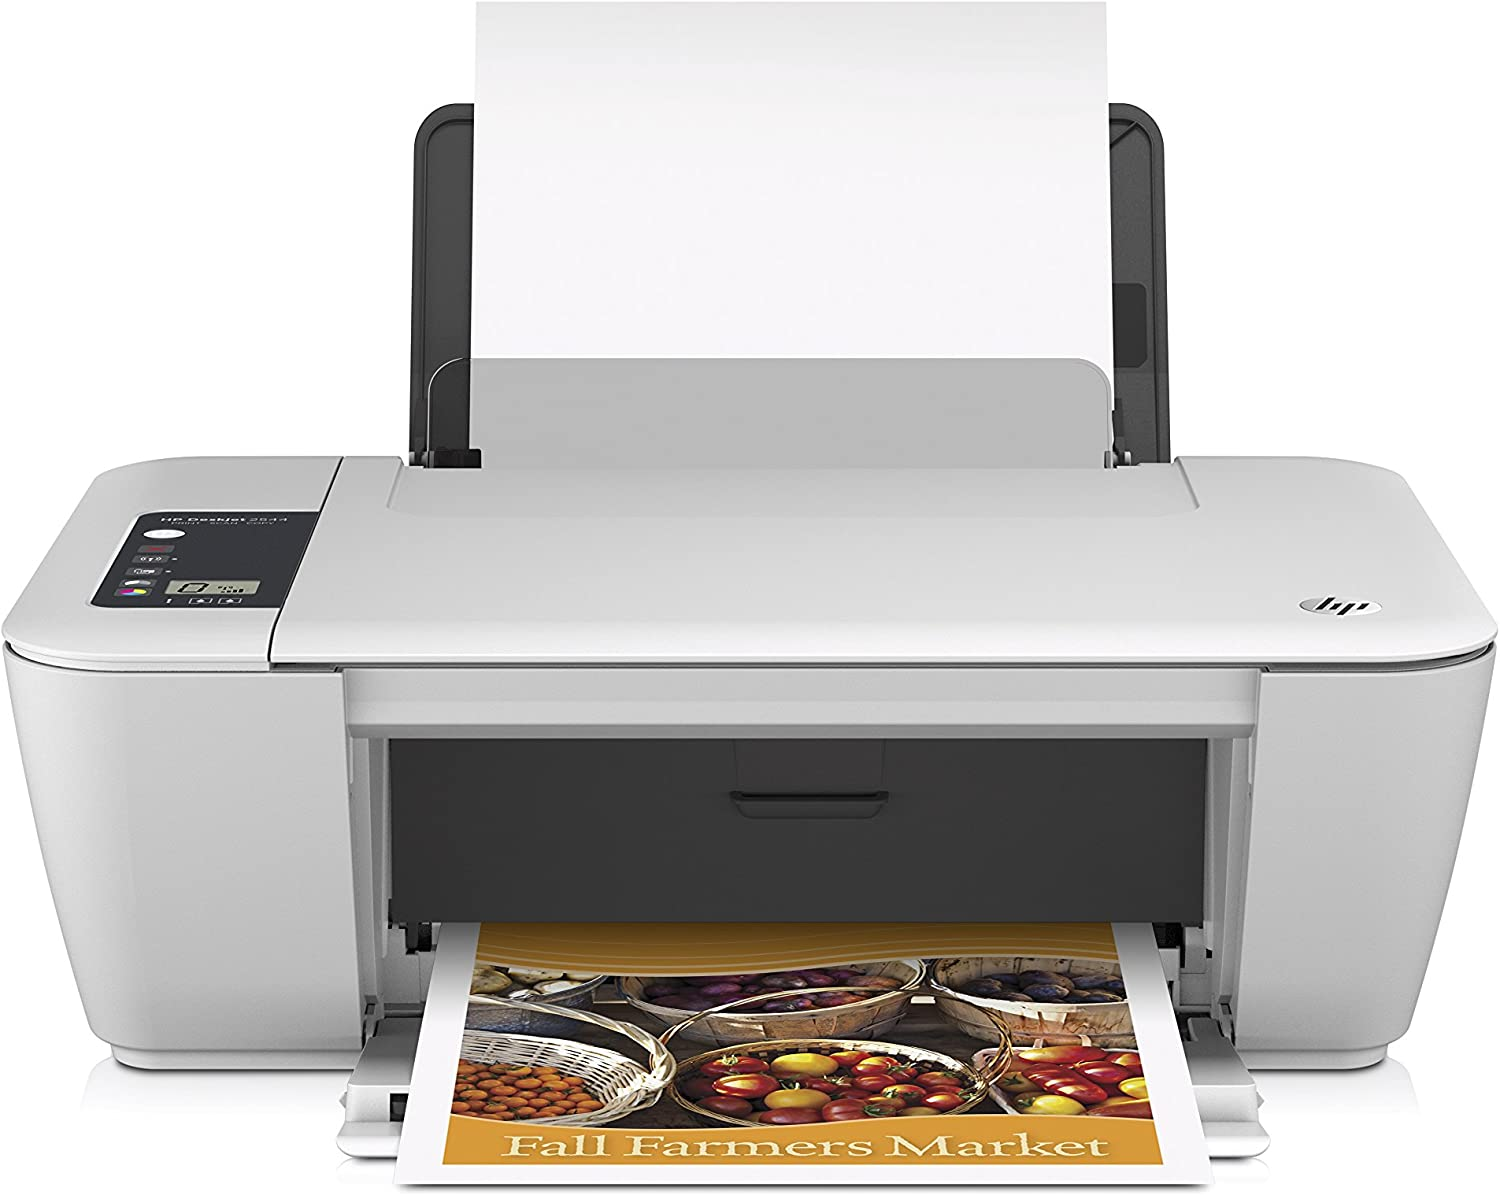 HP DeskJet 2544 Compact All-in-One Wireless Printer with Mobile Printing (D3A79A)